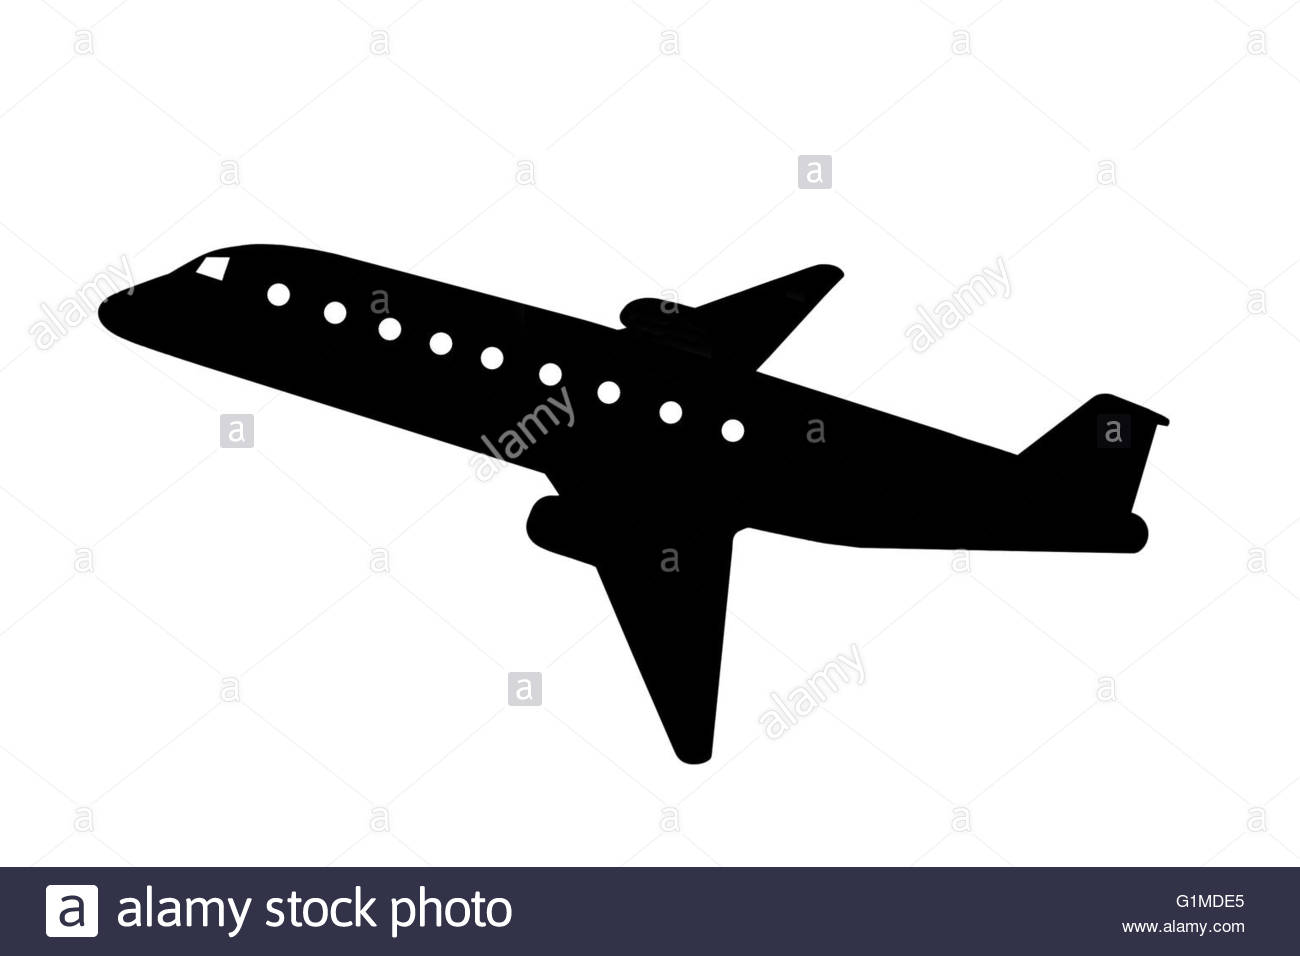 Airport Or Low Flying Aircraft Silhouette As Clip Art Stock Photo.